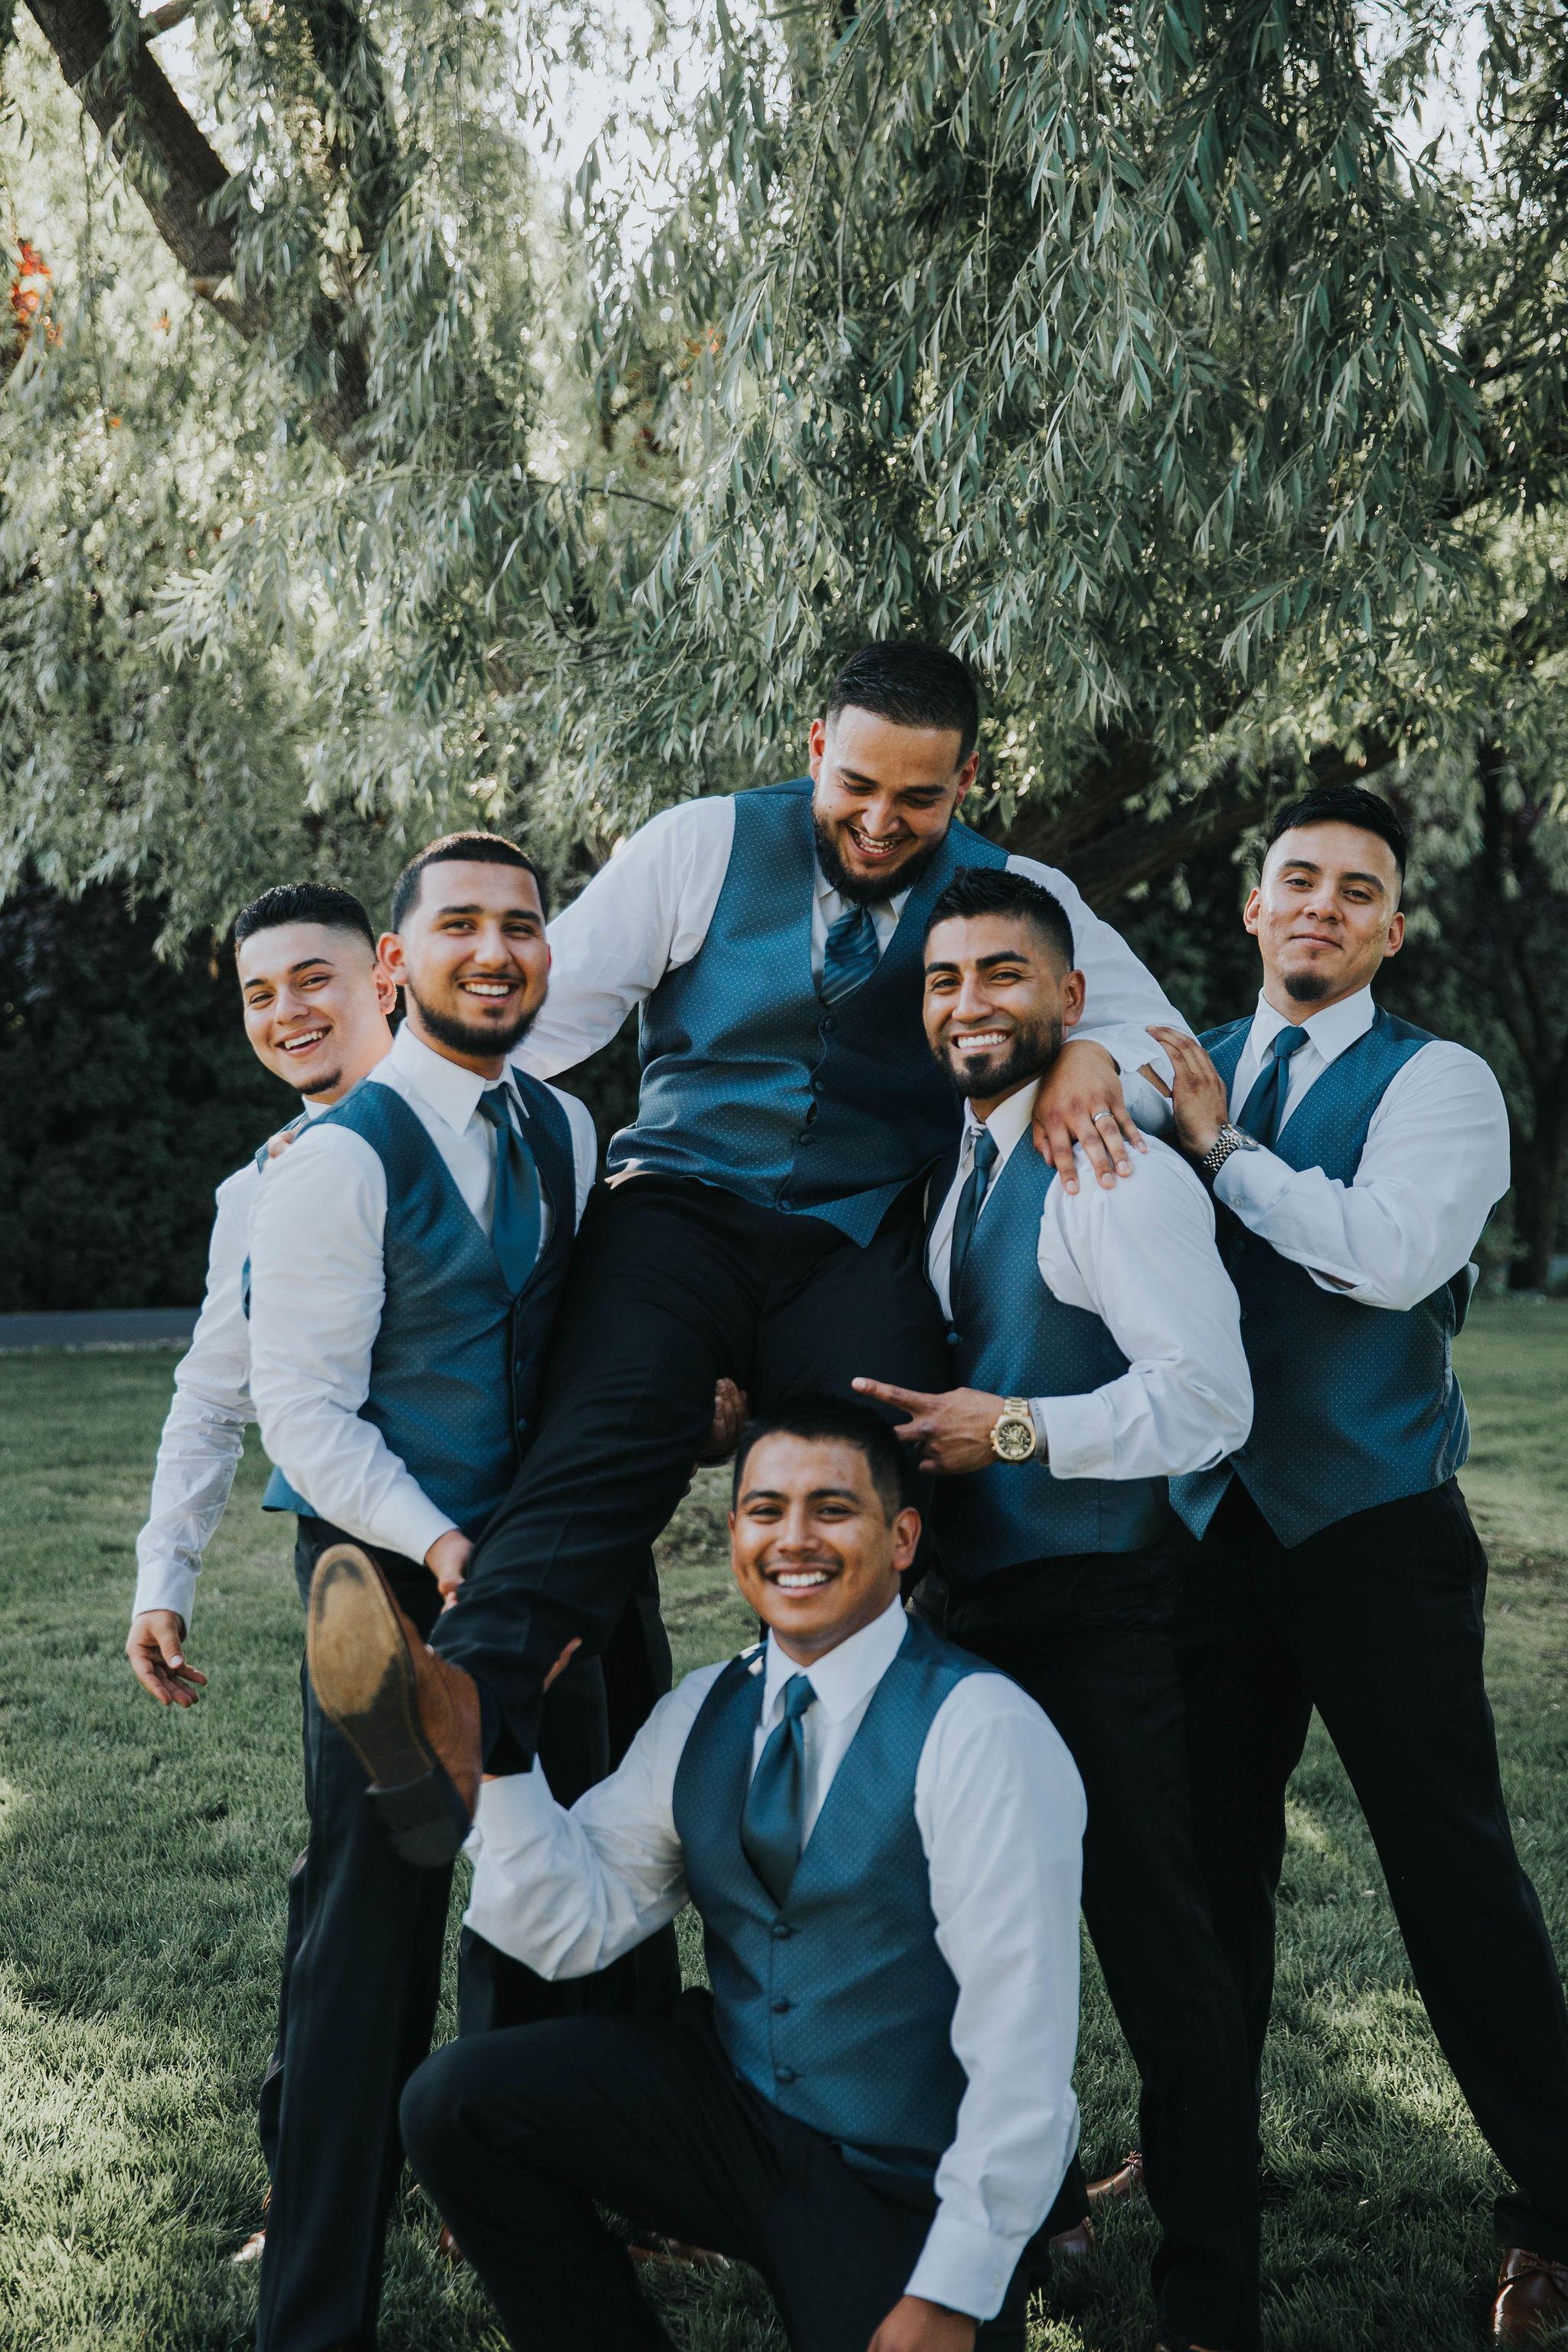 fun groomsmen shot spokane bride